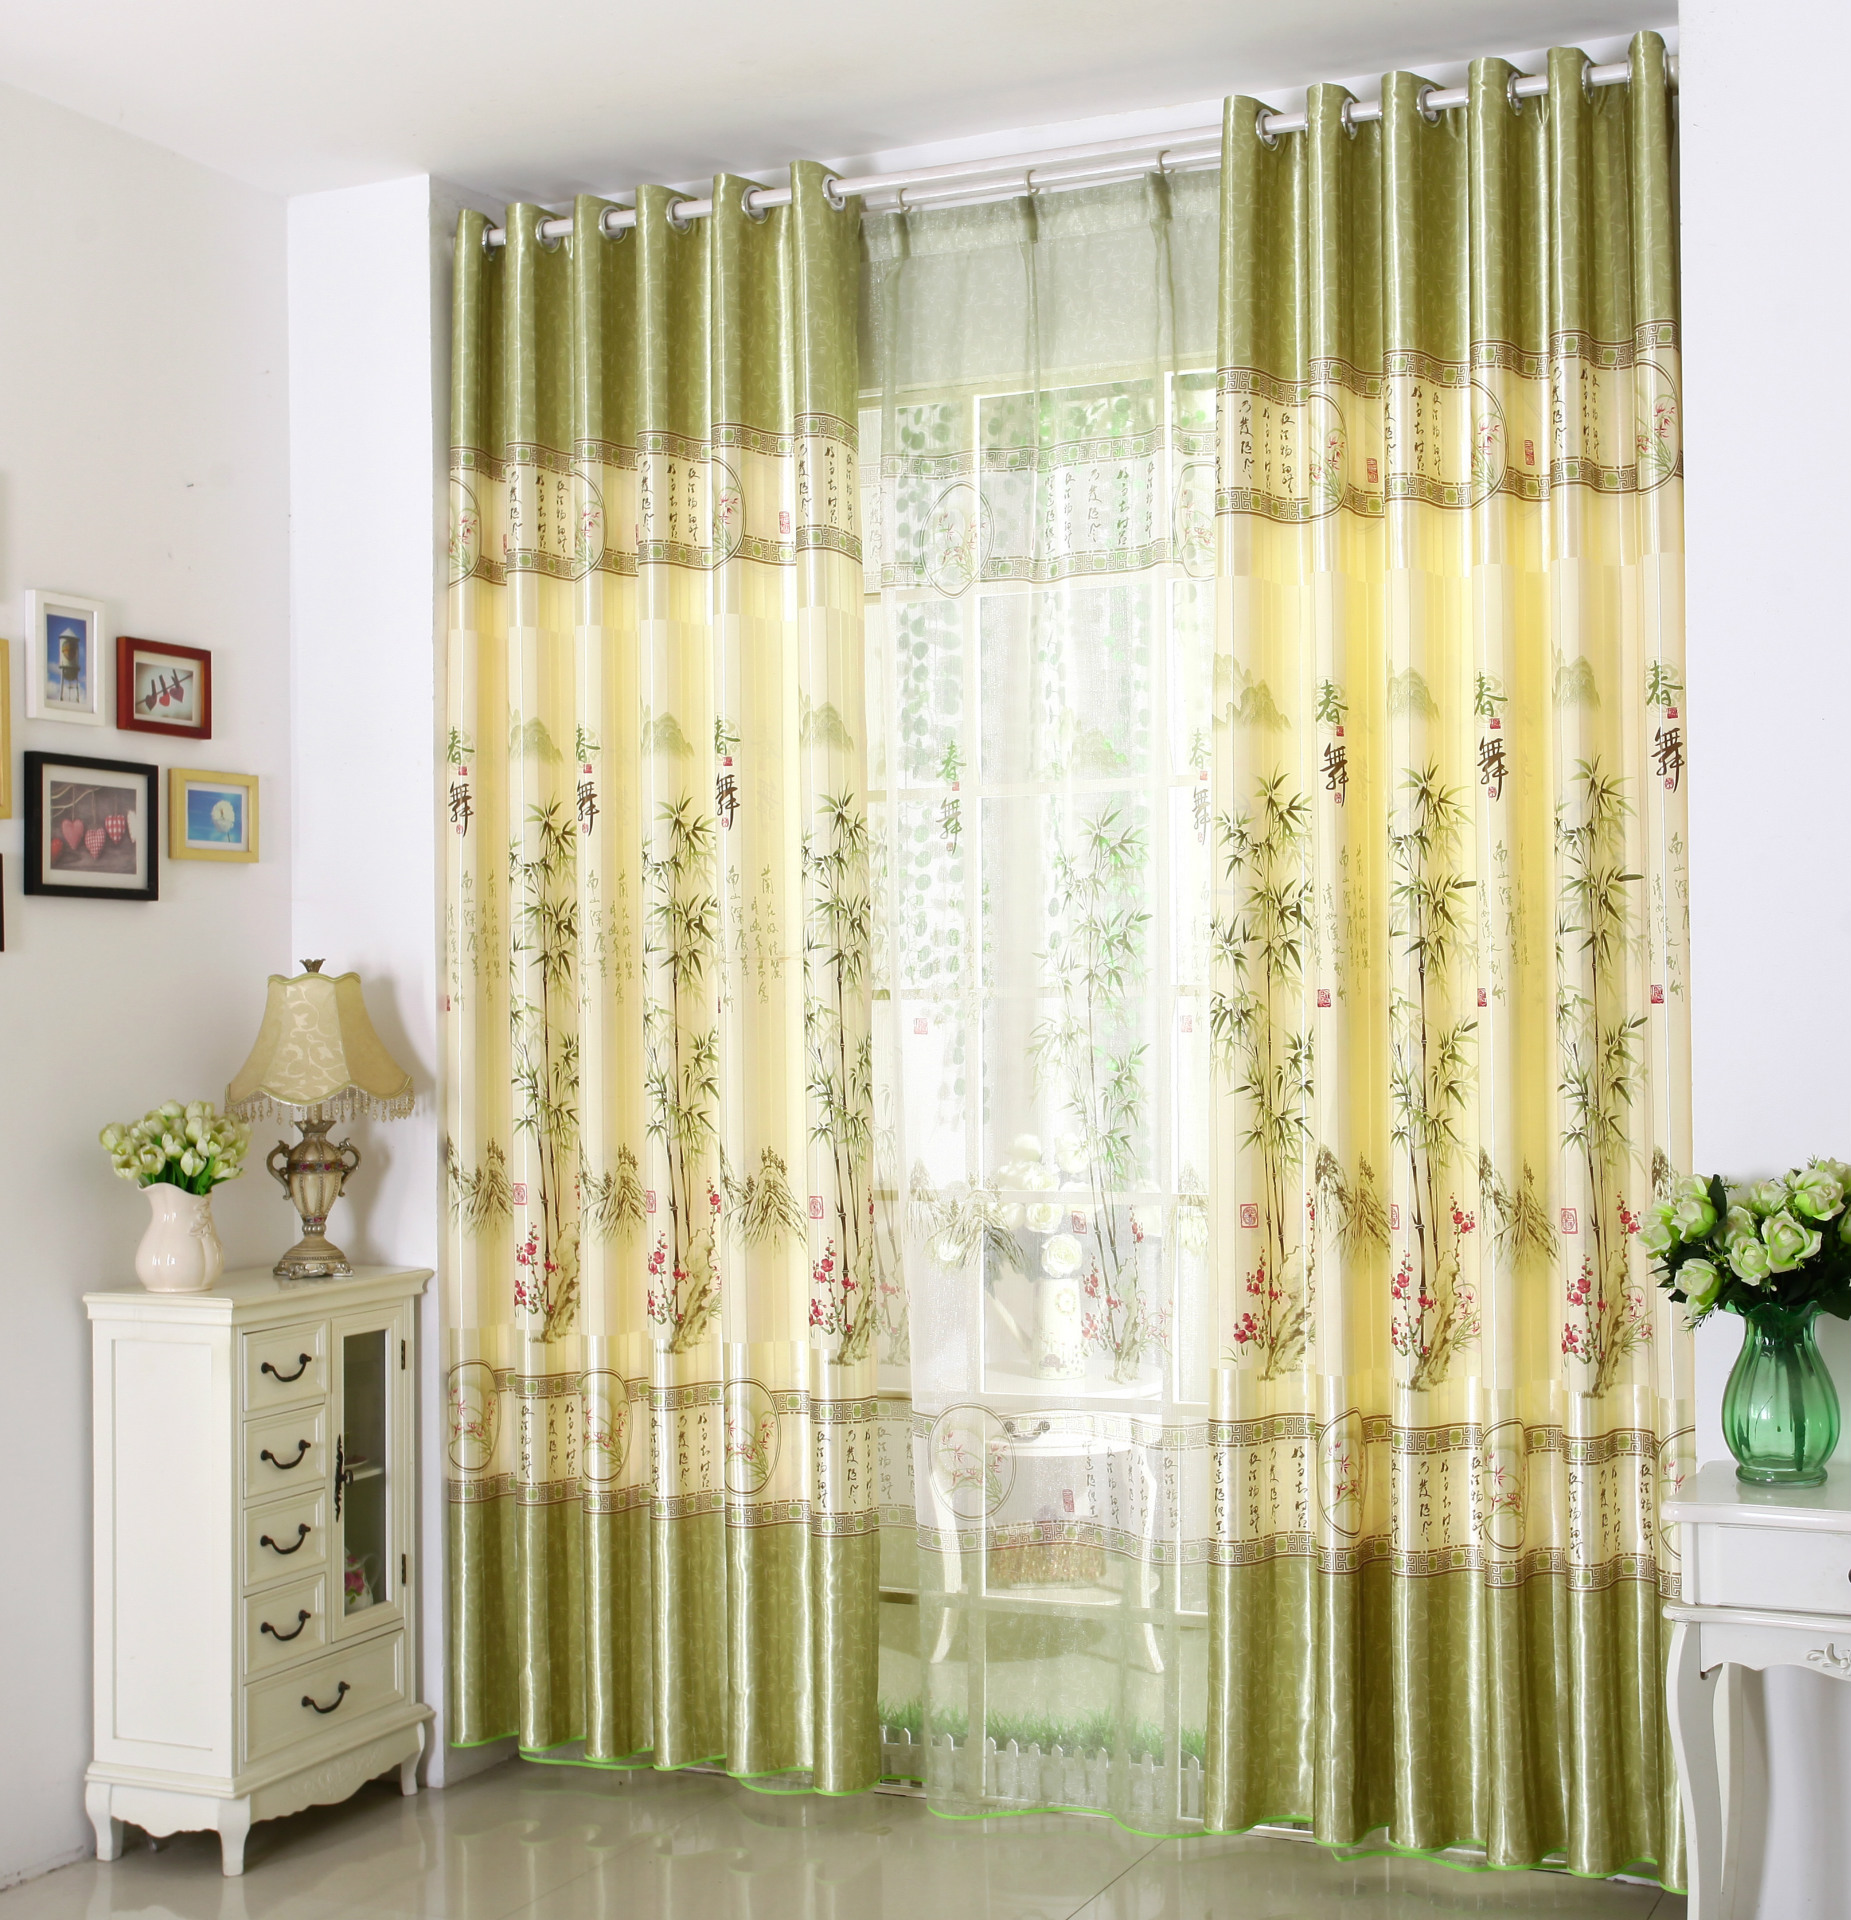 Traditional Curtains Classic Traditional Curtains For Living Dining Room Bedroom Printing Chinese Pastoral Shading Plant Curtains For Home Decoration In Curtains From Home